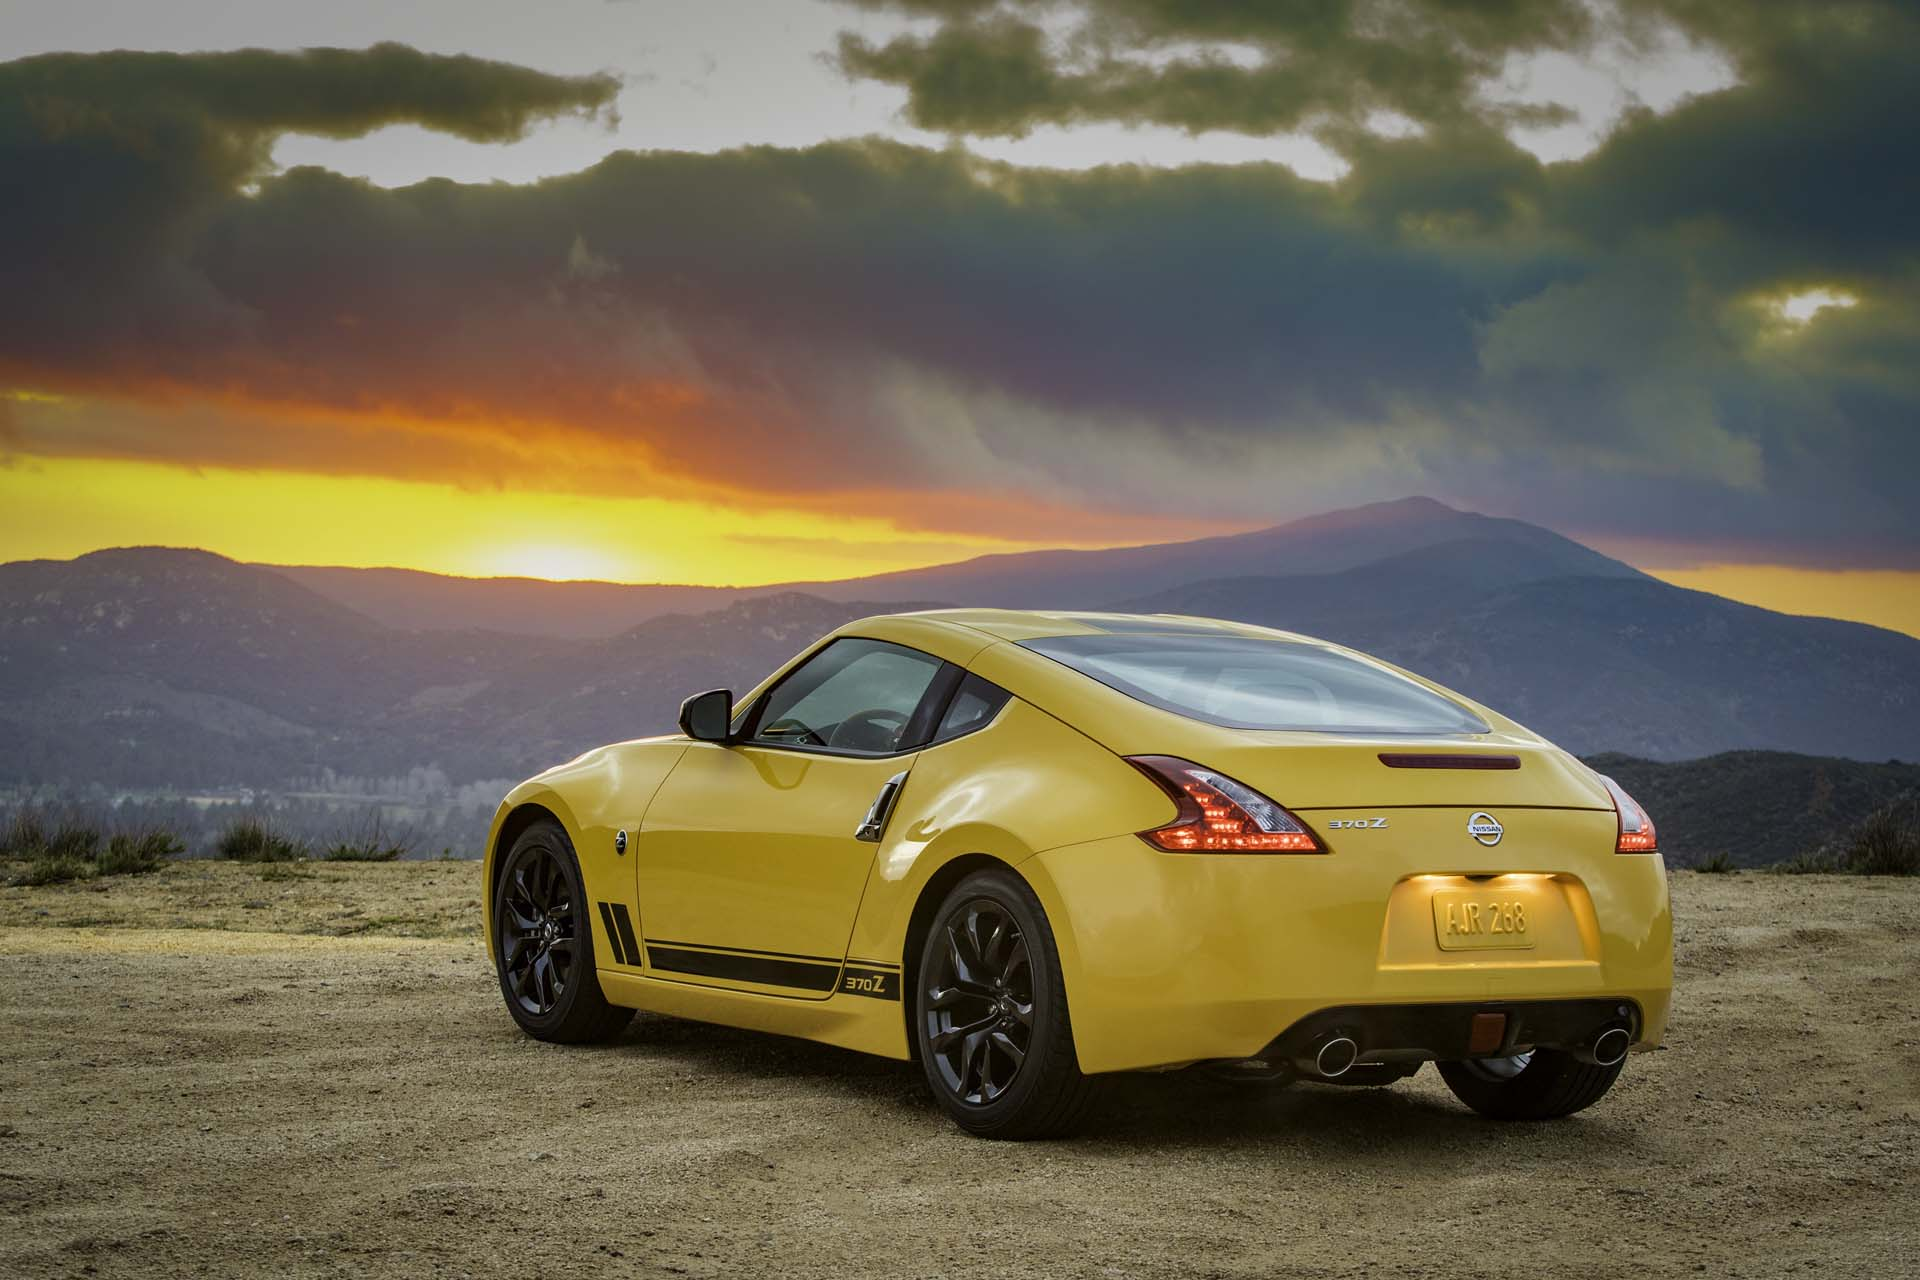 72 All New 2020 Nissan Z Turbo Nismo Exterior and Interior